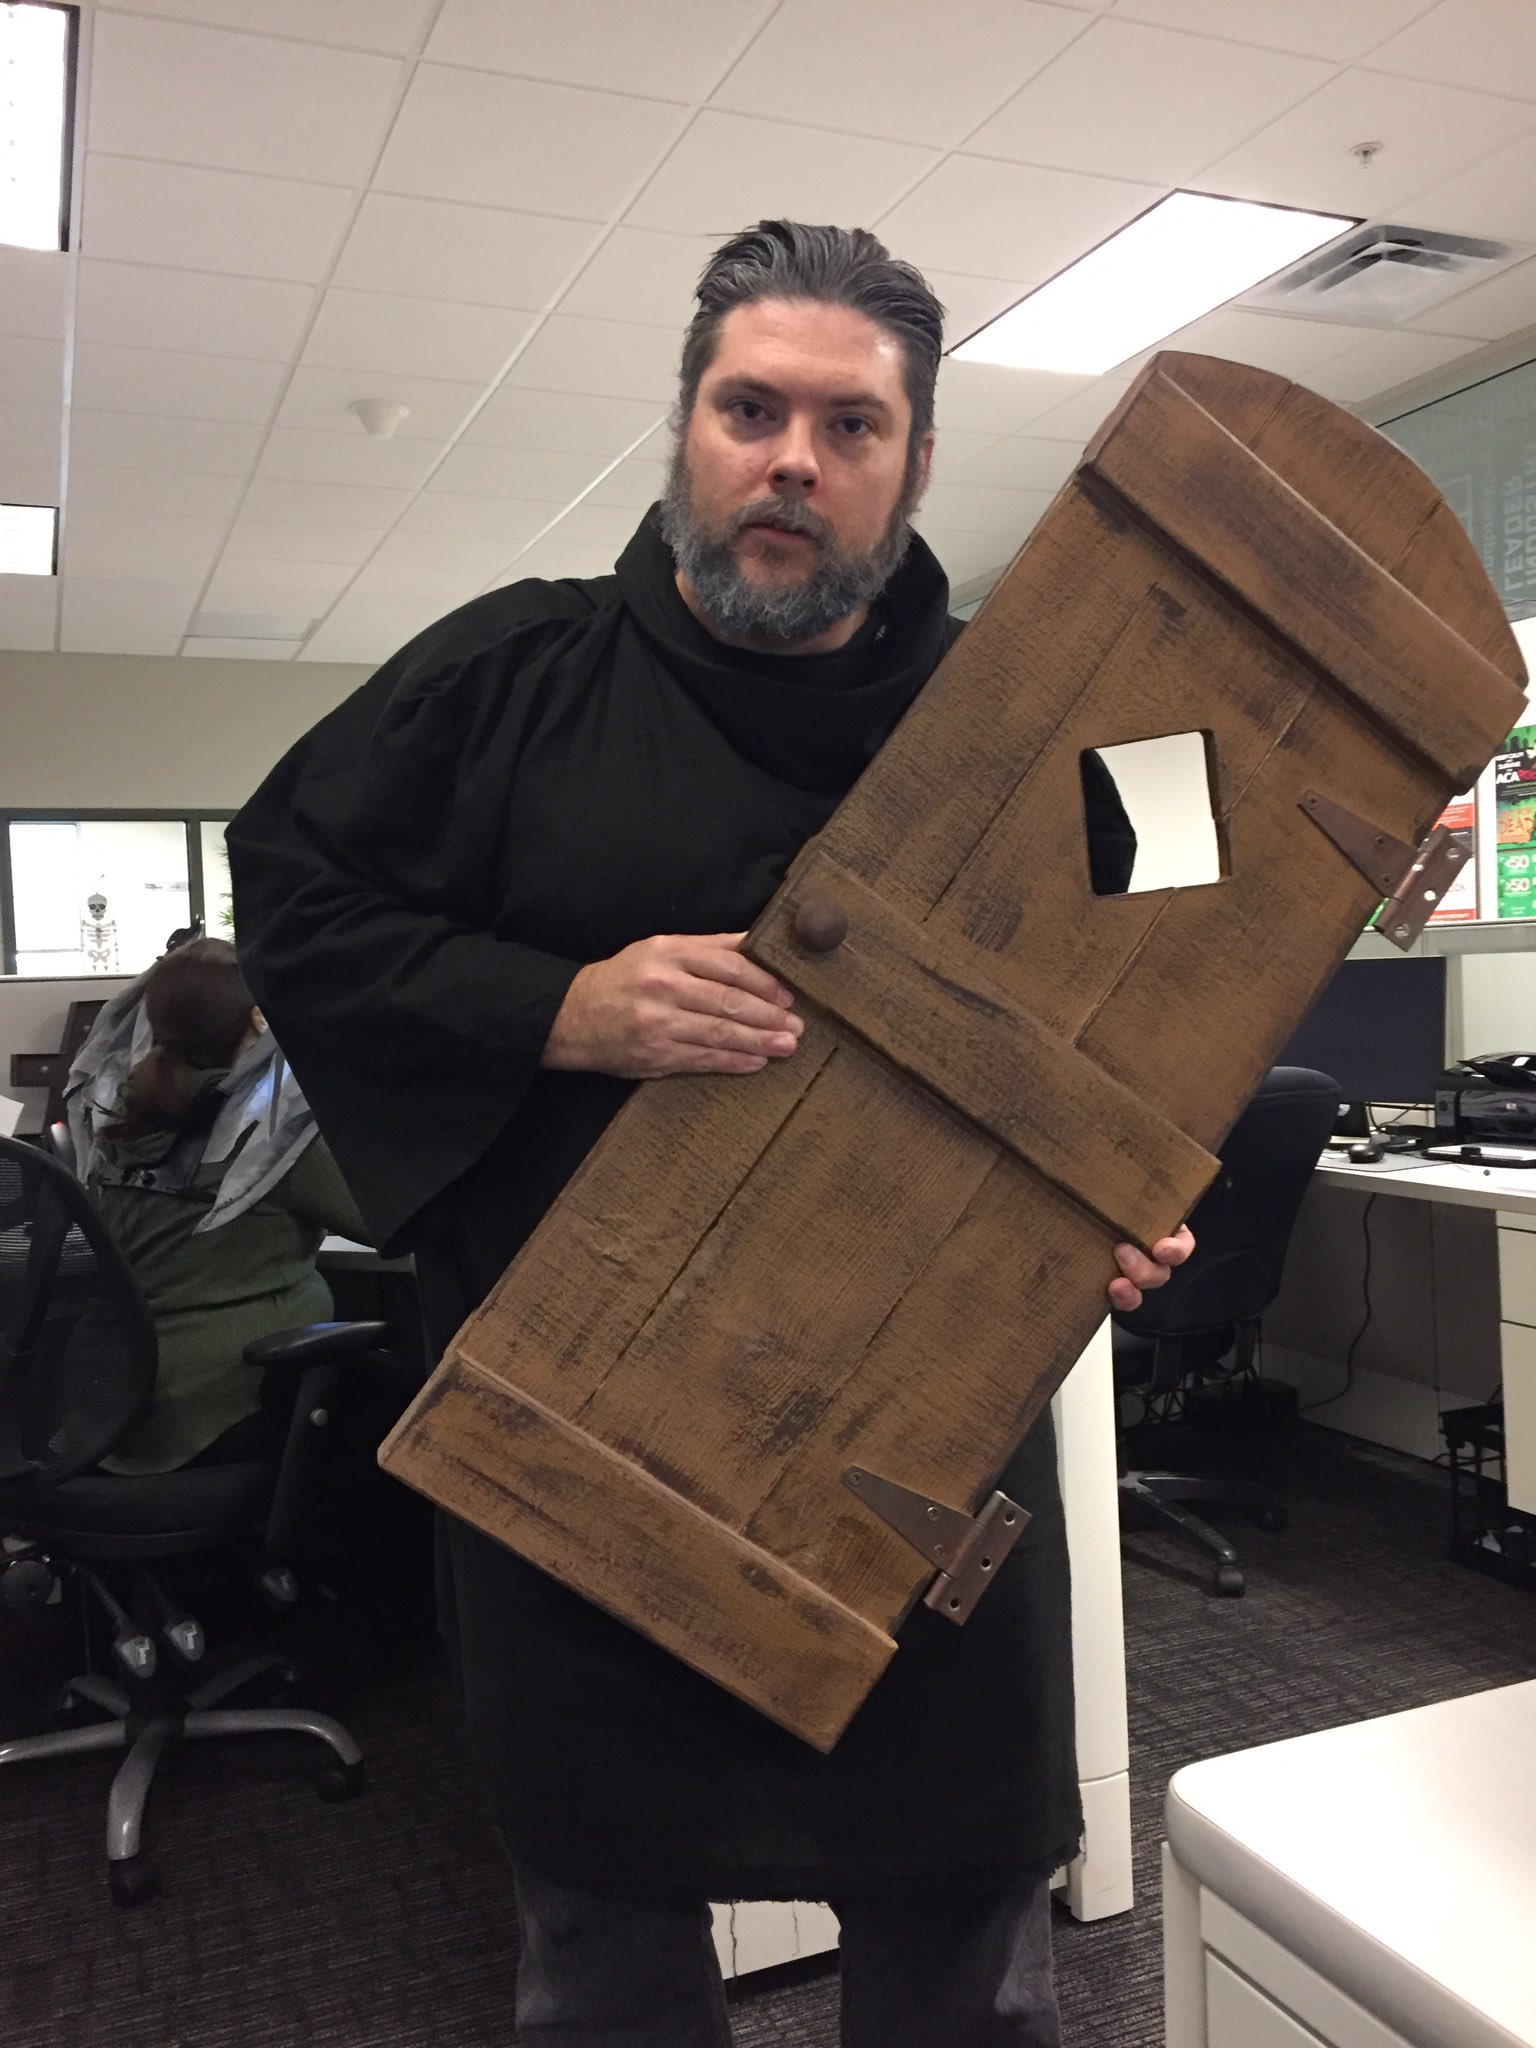 There was a really nice guy holding the door for me at the office today #GoTHalloween #Hodor #Holdthedoor https://t.co/FEFKTEcY3Q